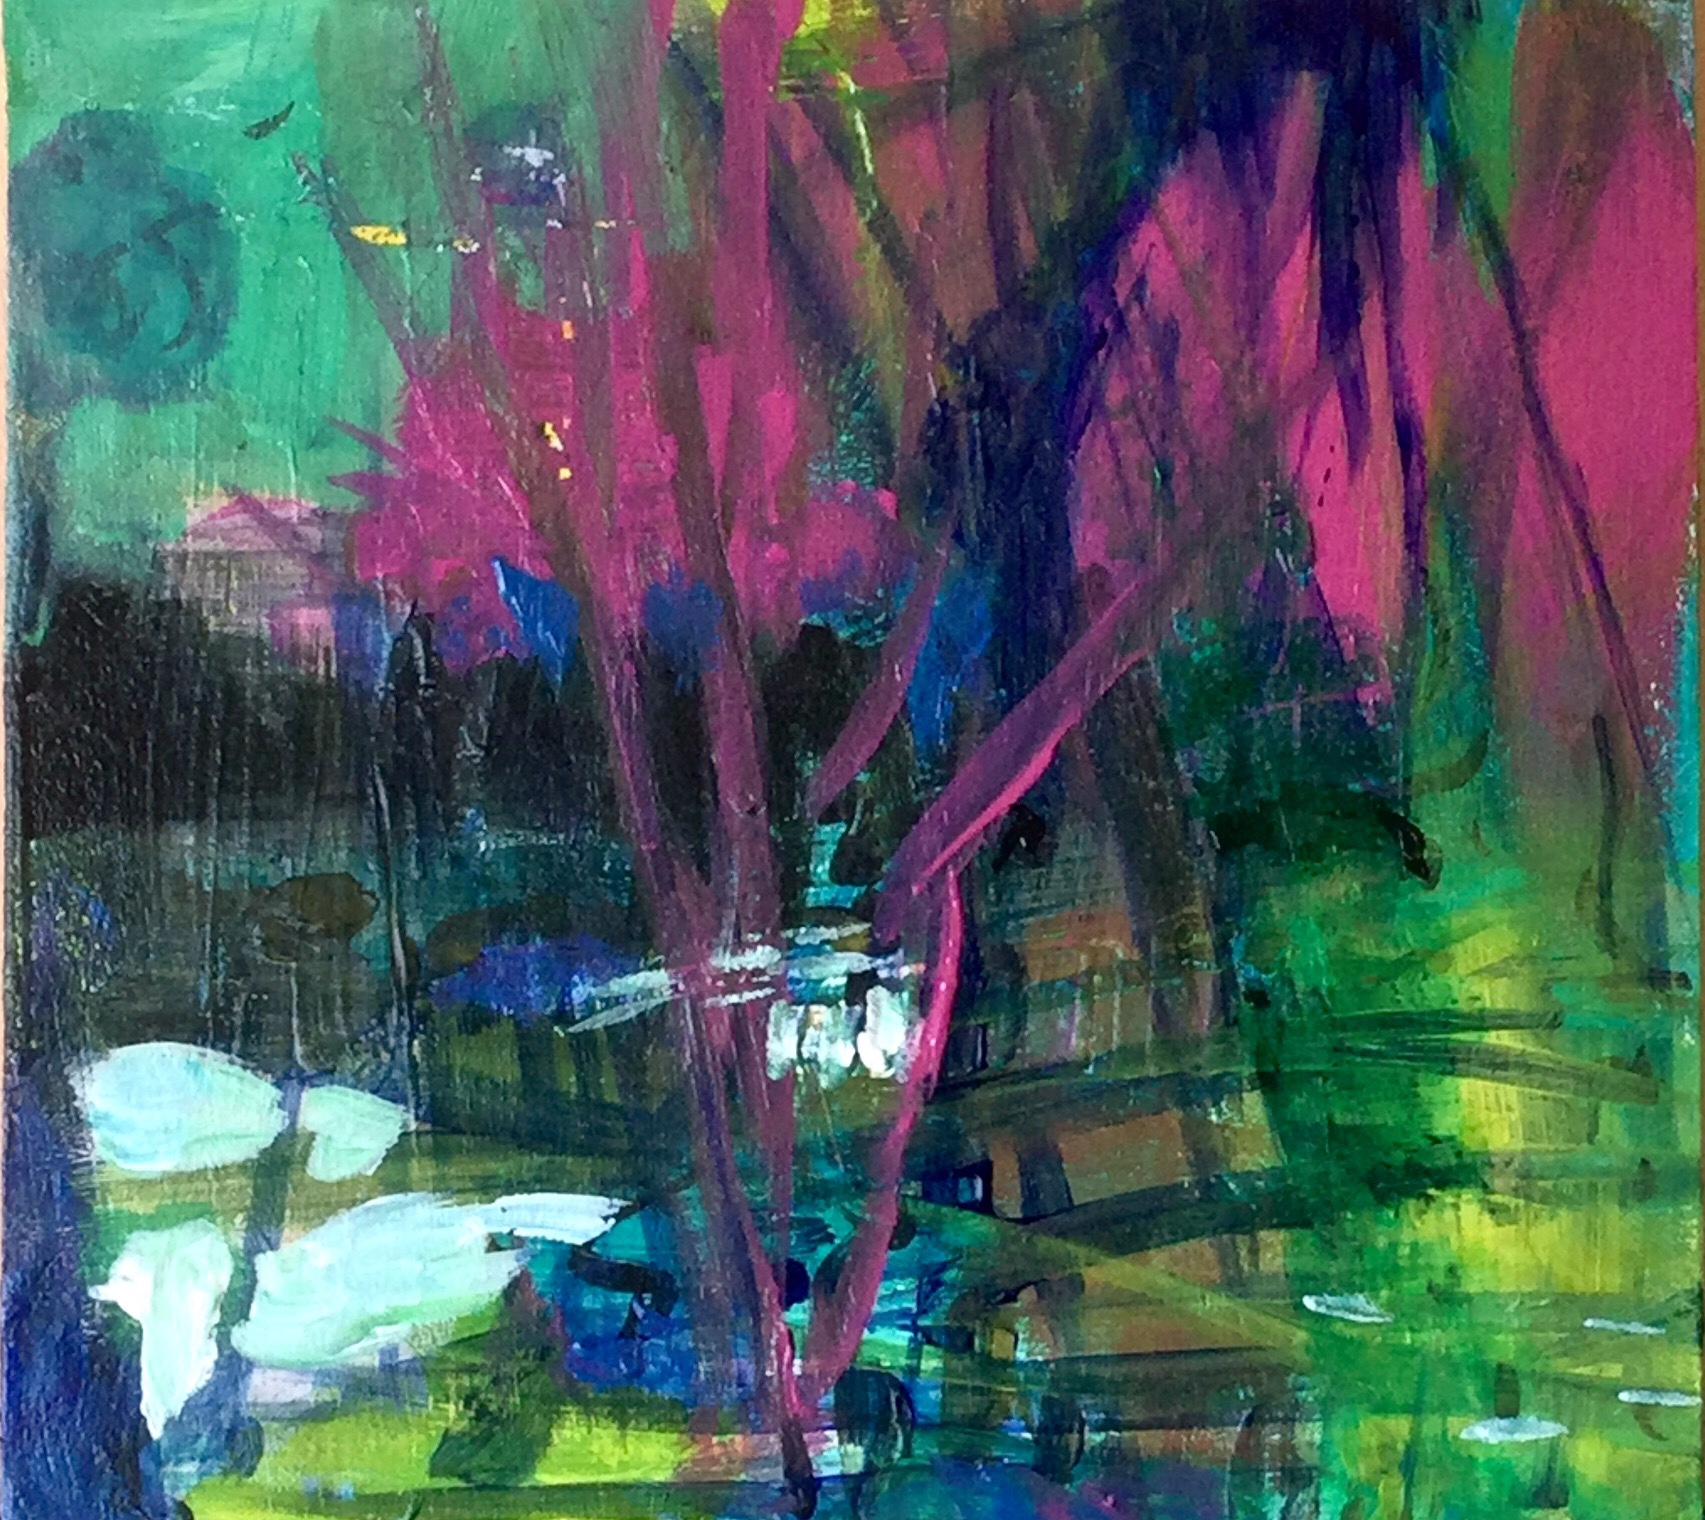 Small abstract painting with magenta wood like parts and a lot of green